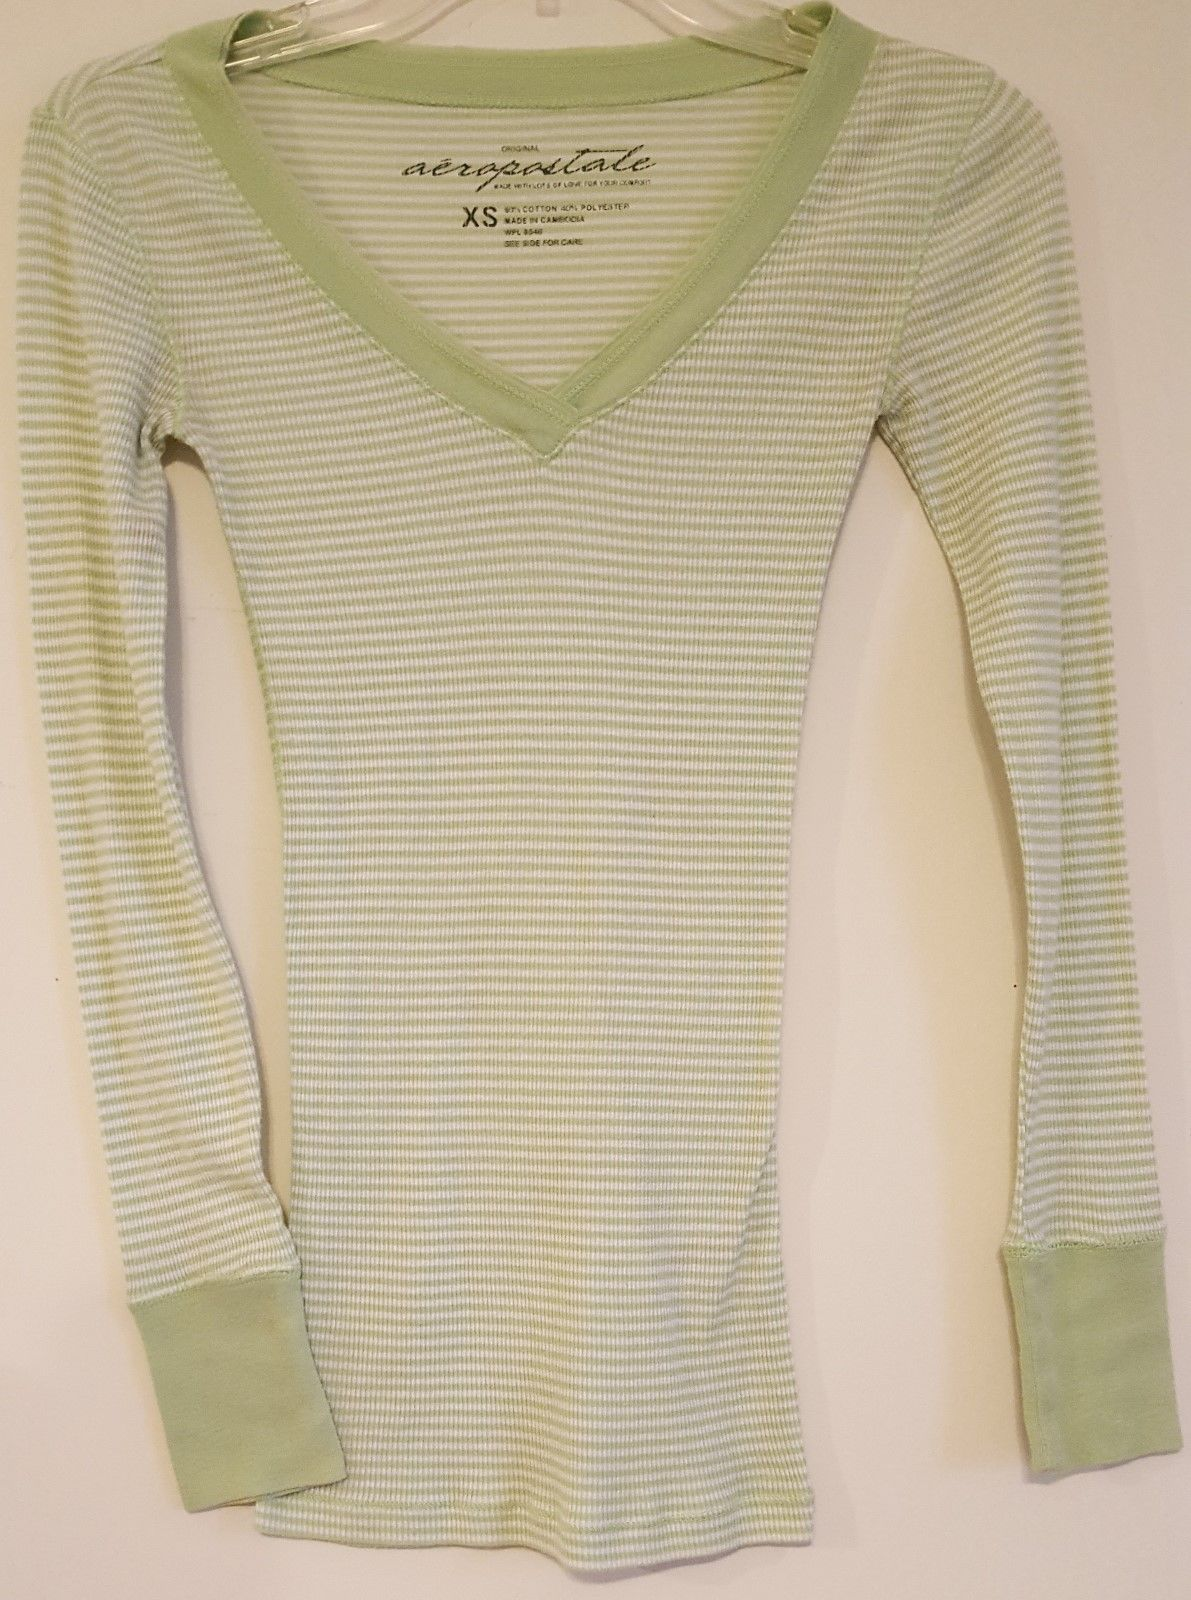 Primary image for AEROPOSTALE WPL 8046 – Junior's Long Sleeve Thermal Jersey Shirt – Size:  XS